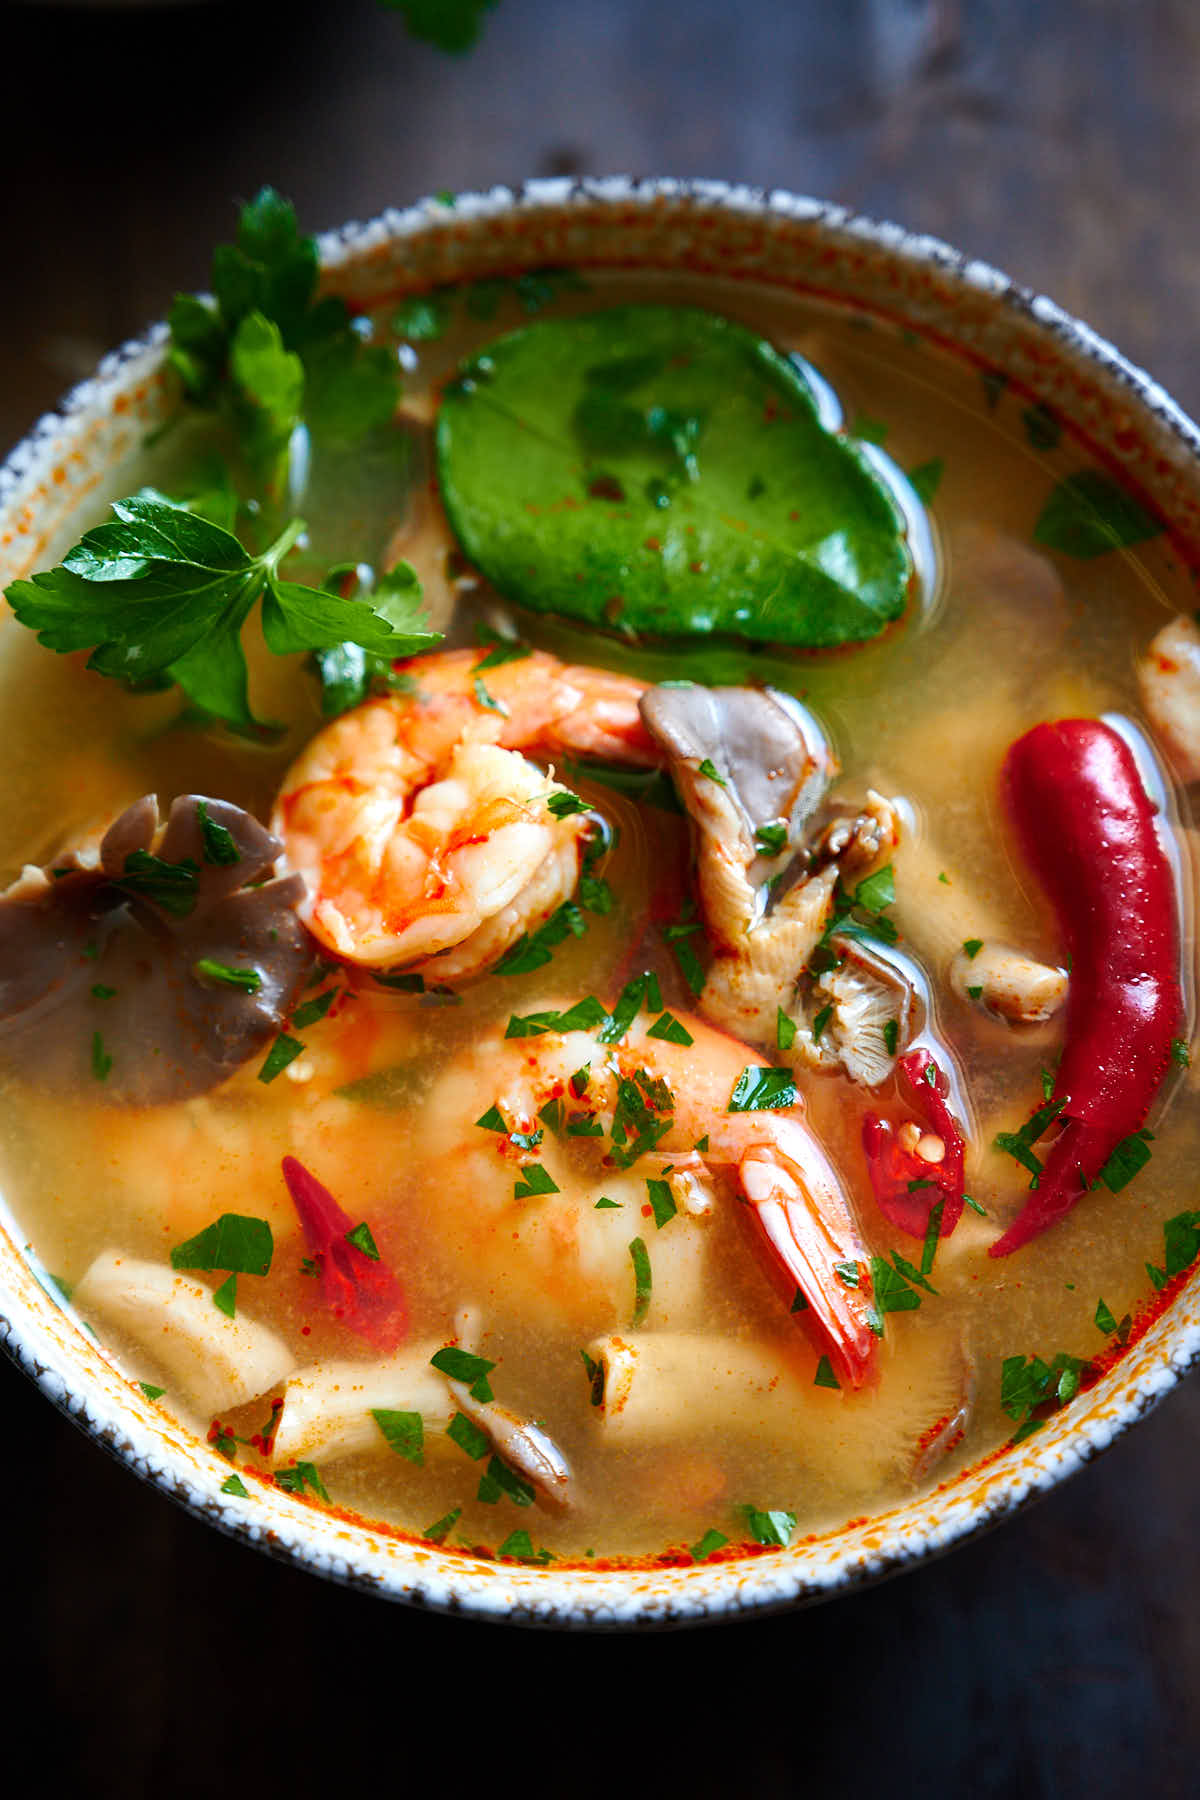 Tom yum soup in a speckled bowl - prawns, mushrooms, lime leaf, cilantro and red chiles in amber soup.